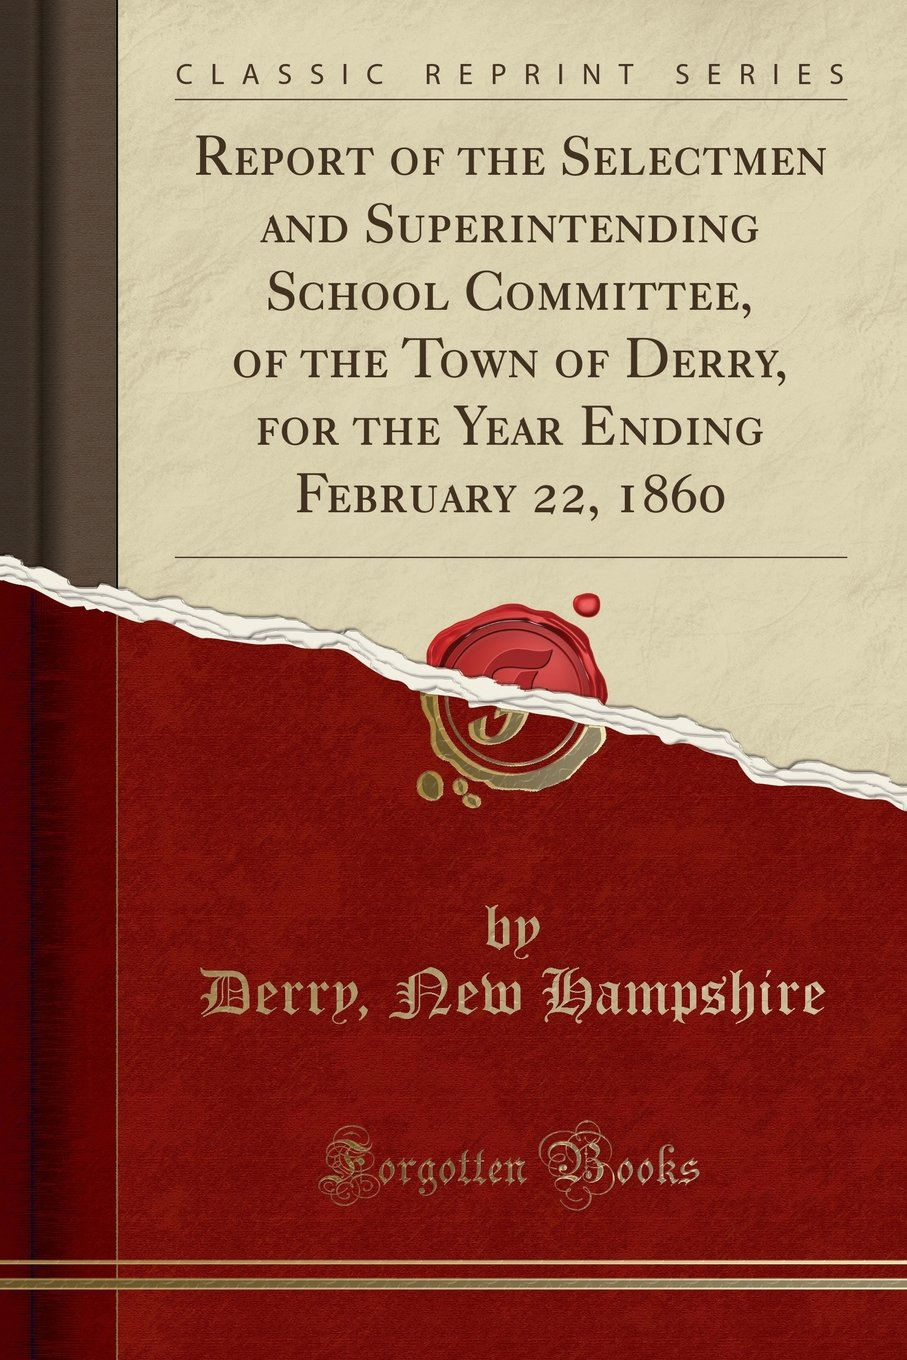 Download Report of the Selectmen and Superintending School Committee, of the Town of Derry, for the Year Ending February 22, 1860 (Classic Reprint) ebook